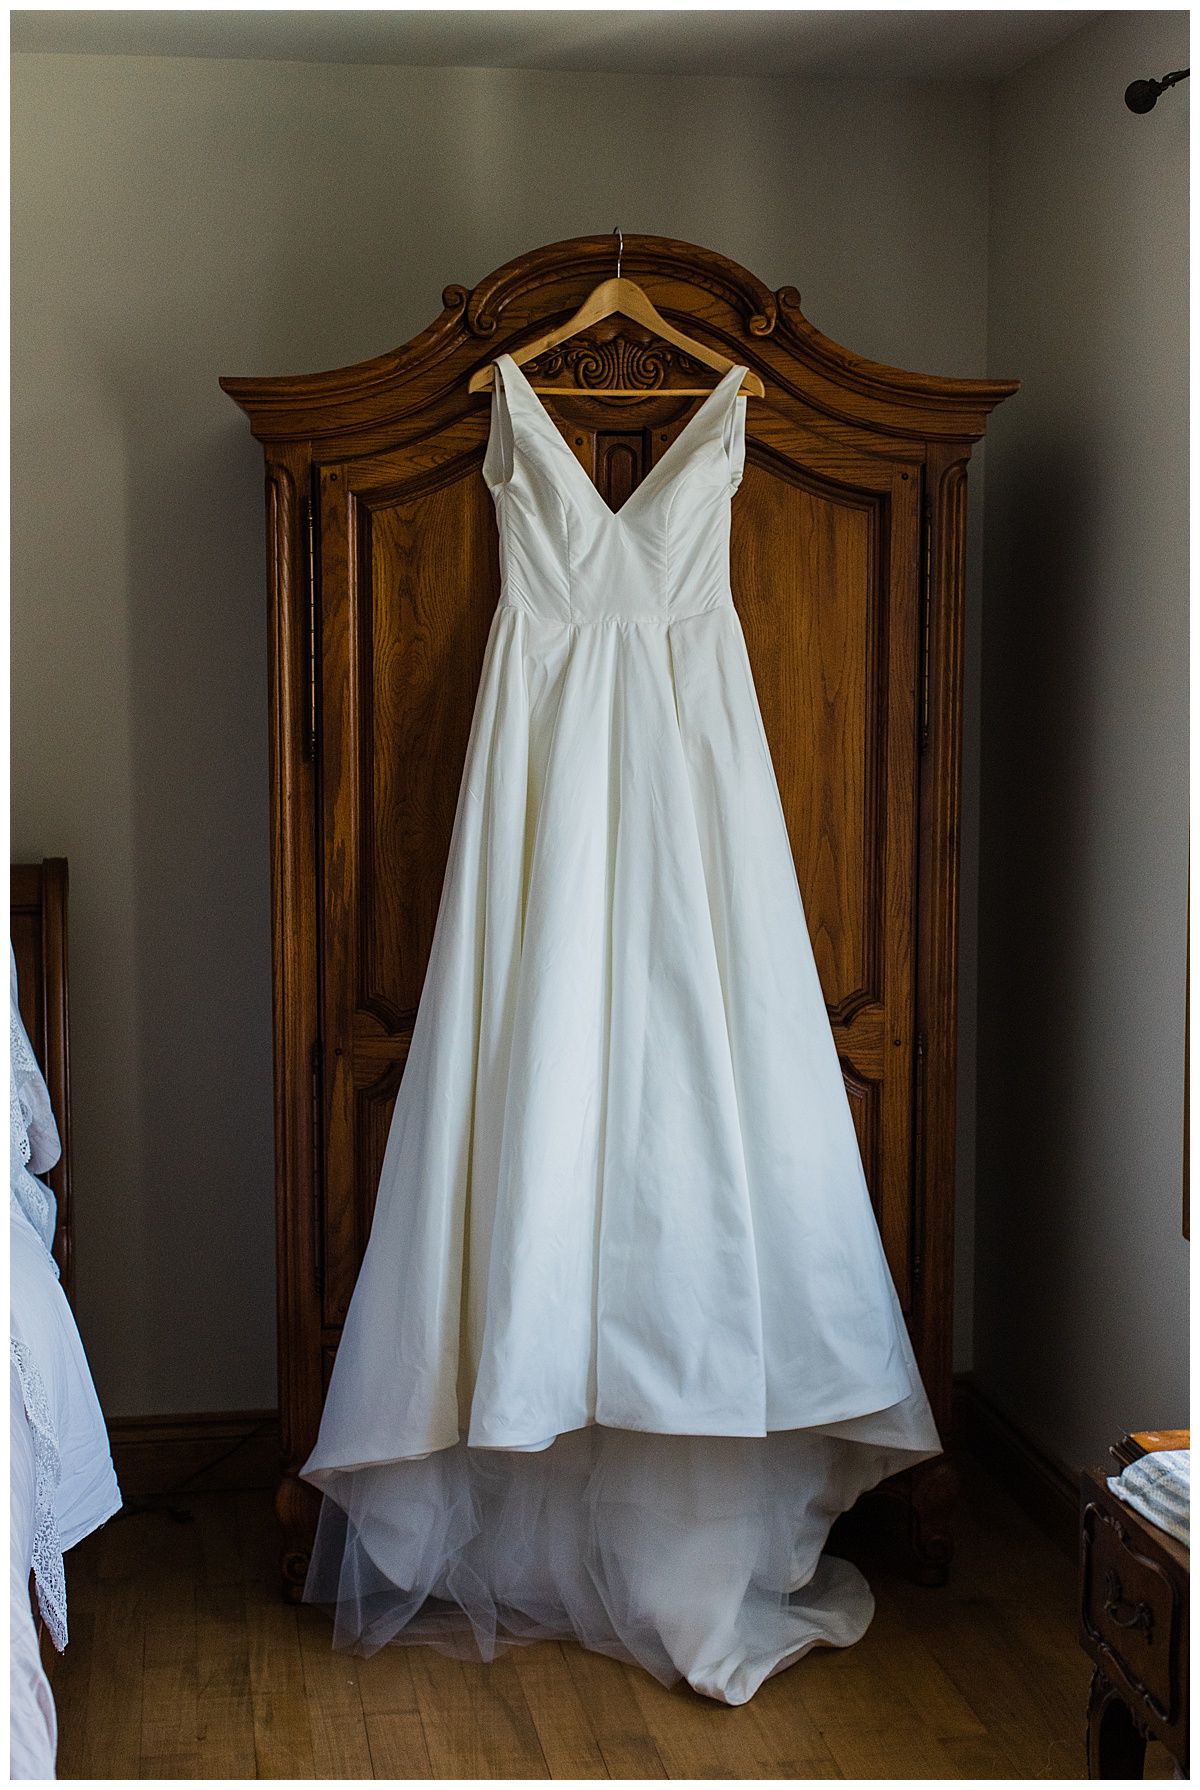 Wedding gown hanging on amour dresser  Ontario Wedding  Toronto wedding photographer  3photography